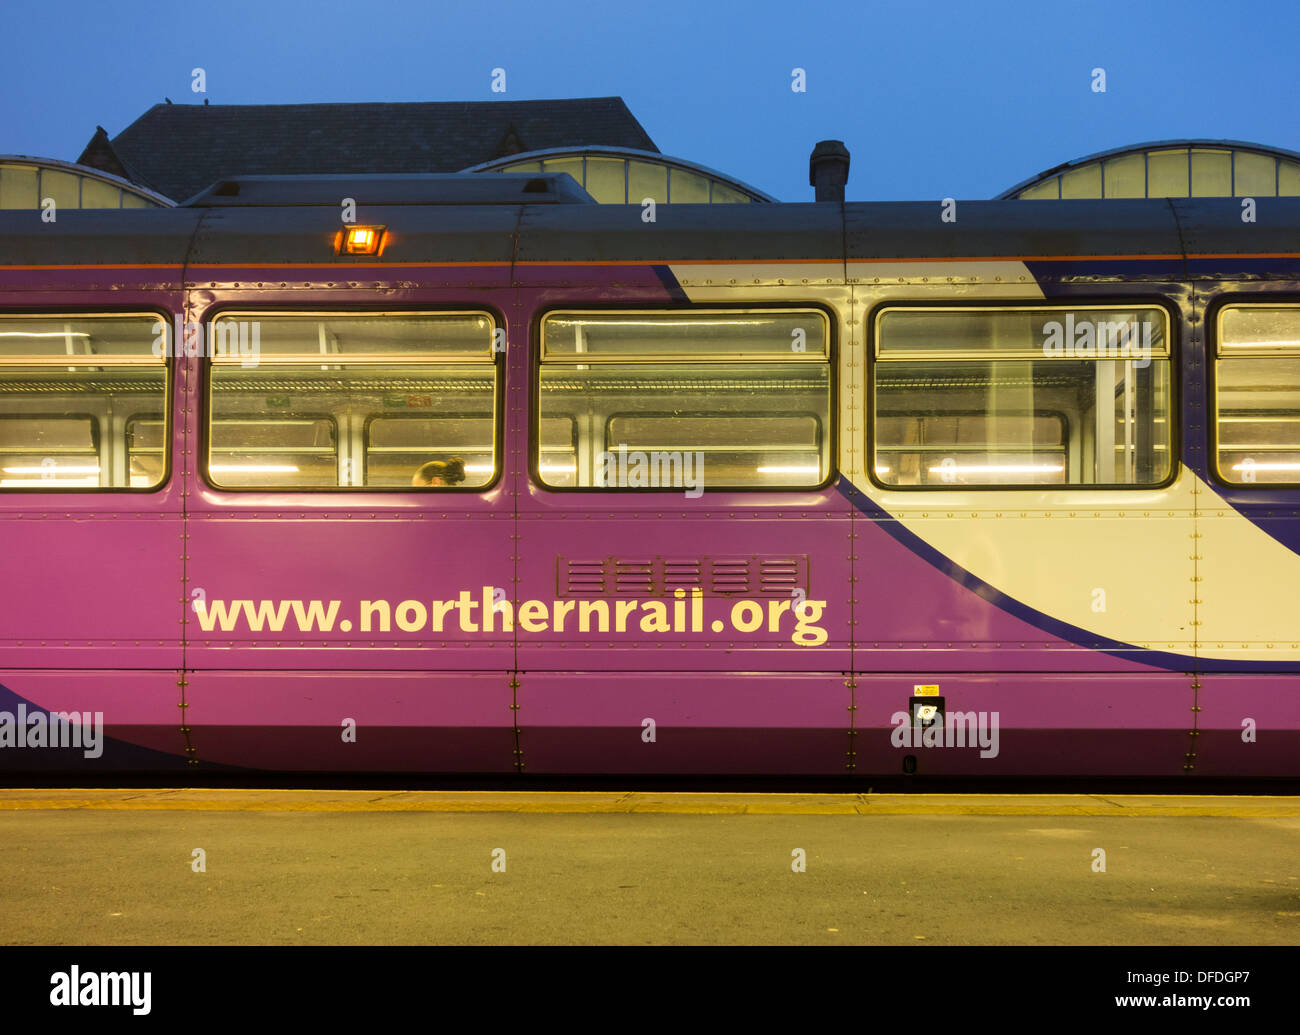 Northern Rail train at Middlesbrough station. England, UK - Stock Image